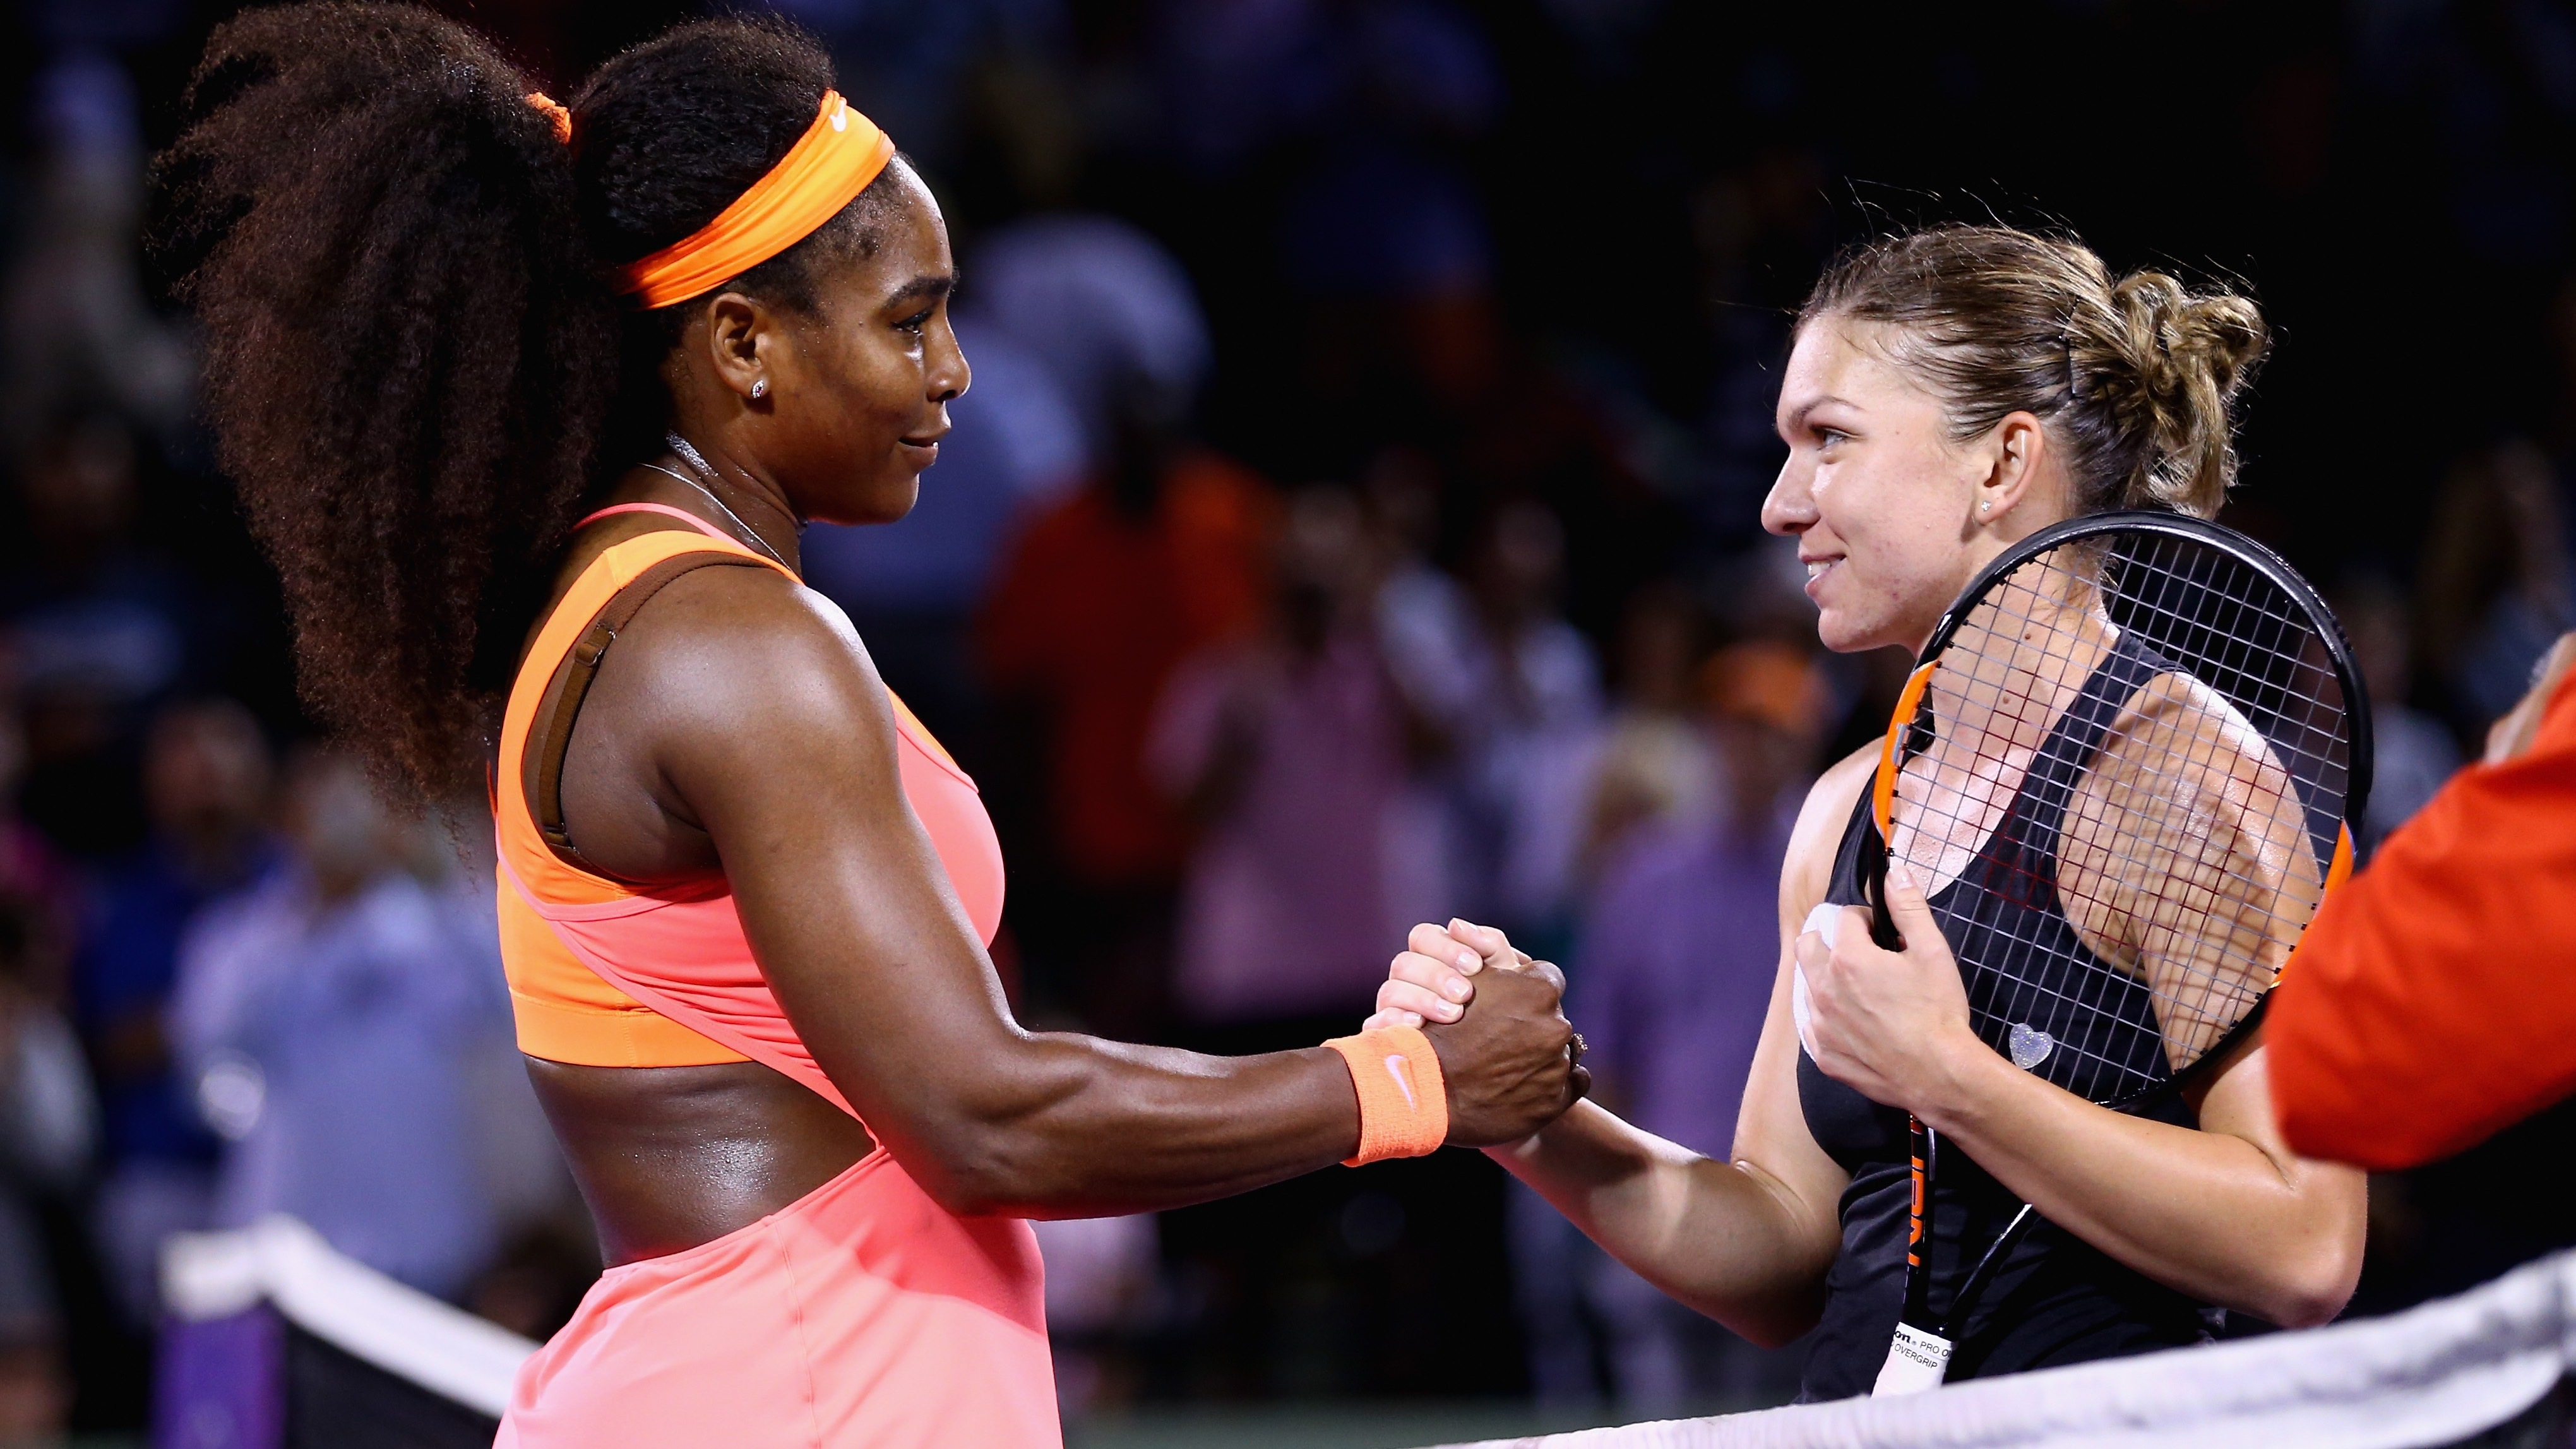 KEY BISCAYNE, FL - APRIL 02: Serena Williams of the United States shakes hands at the net after her three set victory against Simona Halep of Romania in their semi final match during the Miami Open Presented by Itau at Crandon Park Tennis Center on April 2, 2015 in Key Biscayne, Florida. (Photo by Clive Brunskill/Getty Images)